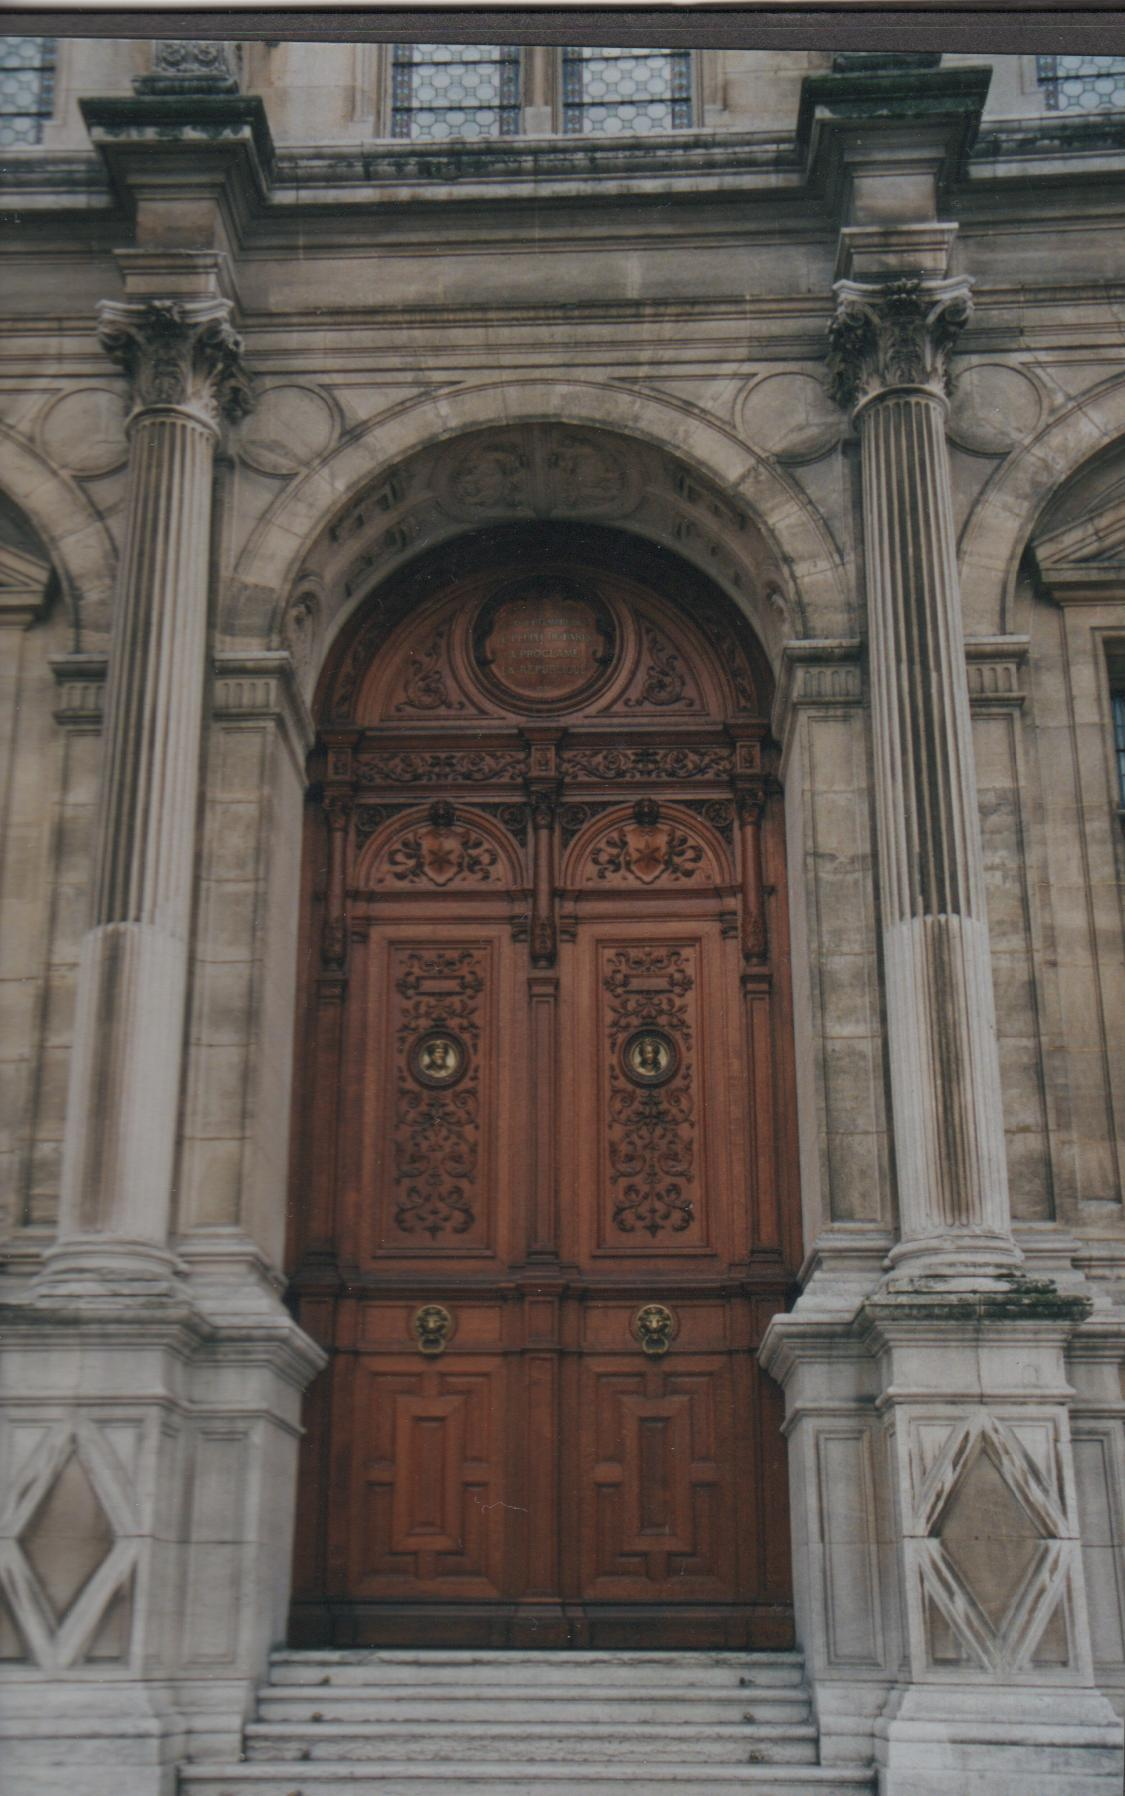 paris door, paris architecture, france, classic architecture